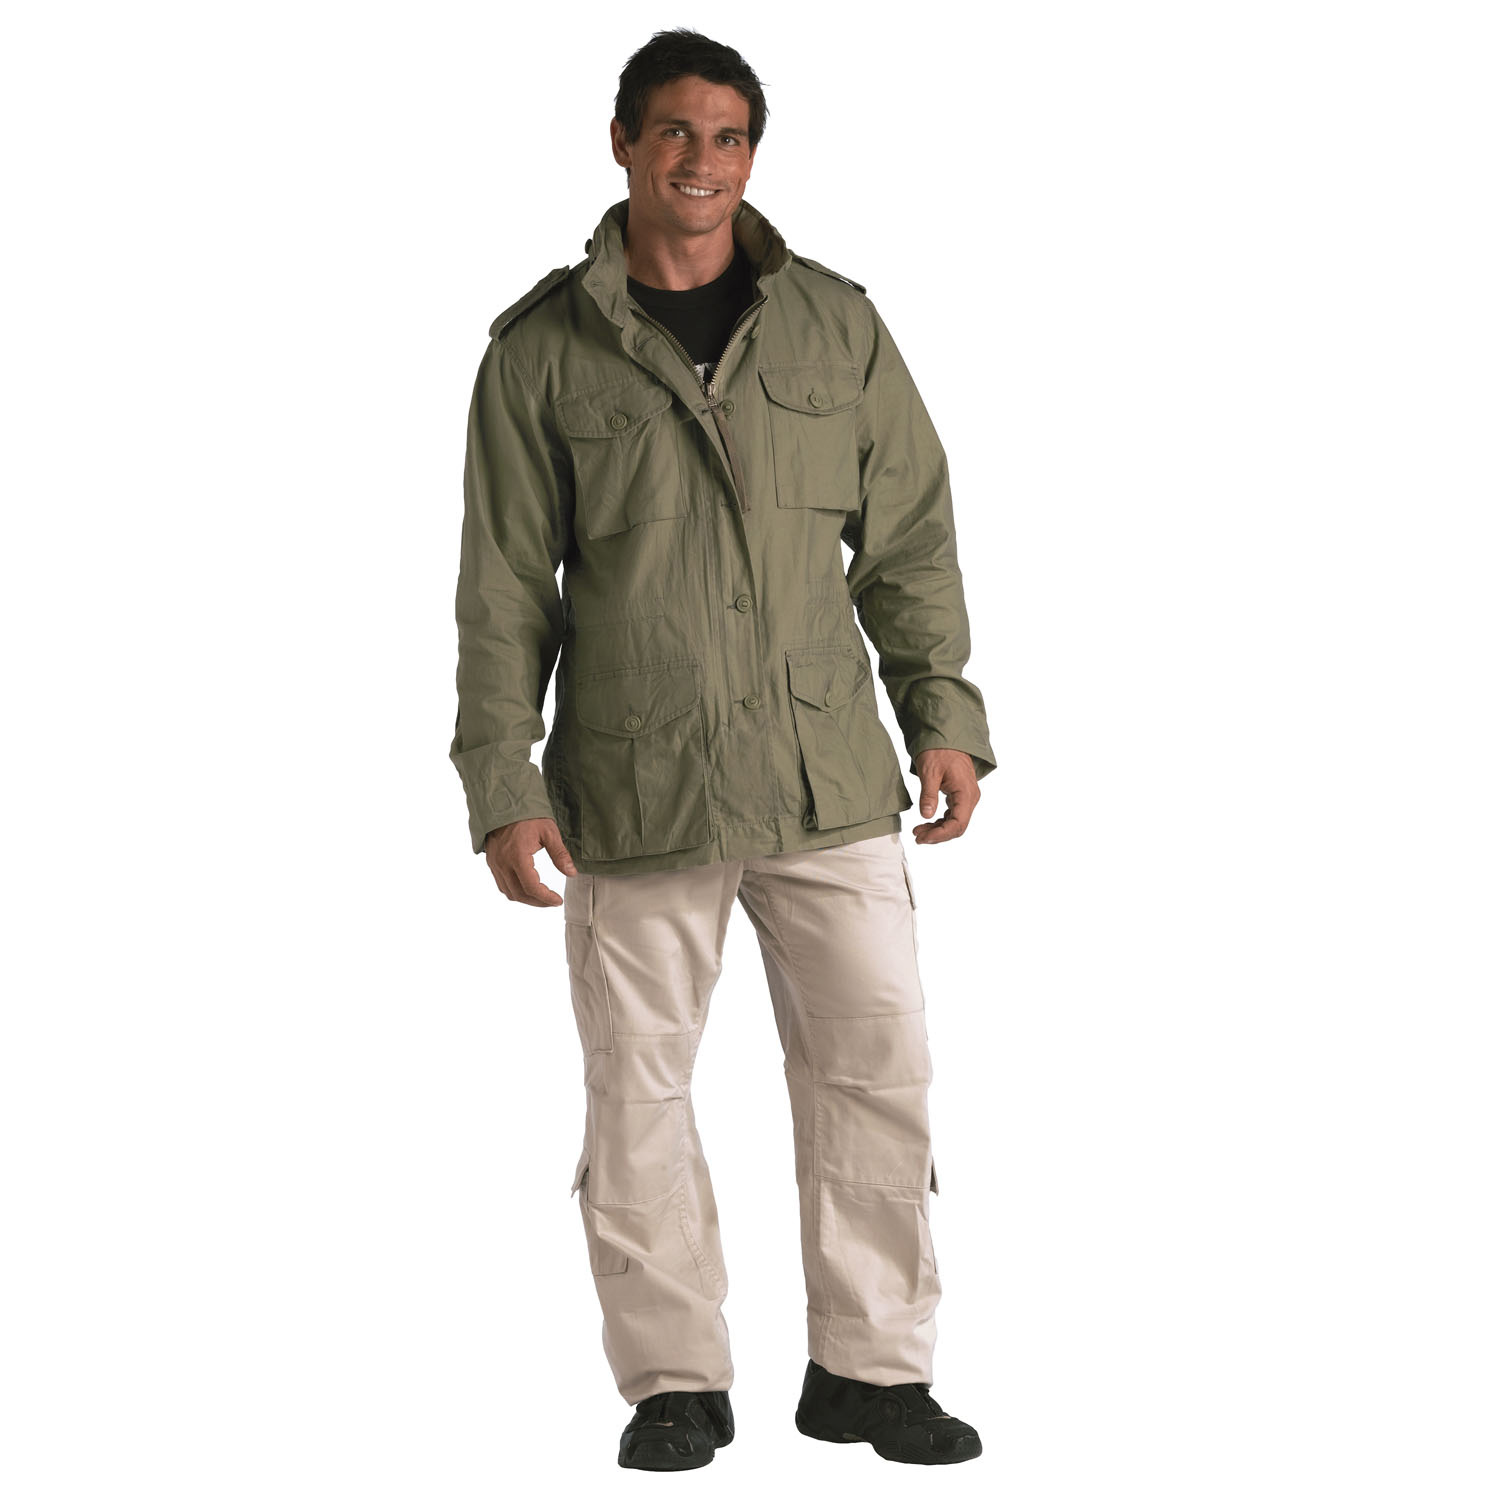 457728a9ab387 Rothco Vintage Lightweight M-65 Field Jacket | Up to 27% Off w/ Free S&H